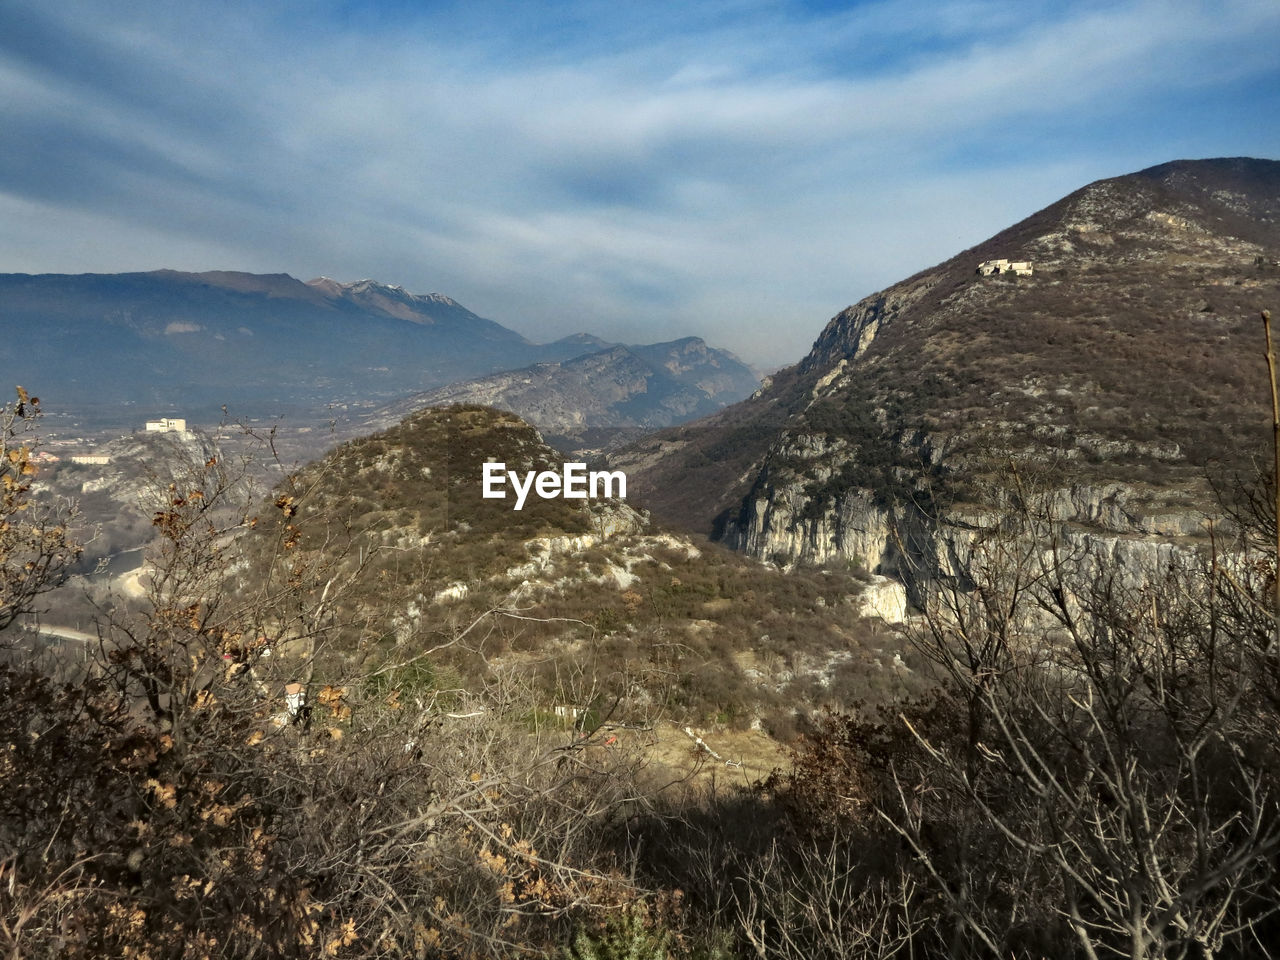 mountain, sky, environment, landscape, cloud - sky, beauty in nature, nature, scenics - nature, mountain range, no people, day, outdoors, land, scenery, mountain peak, tranquil scene, tranquility, non-urban scene, travel, high